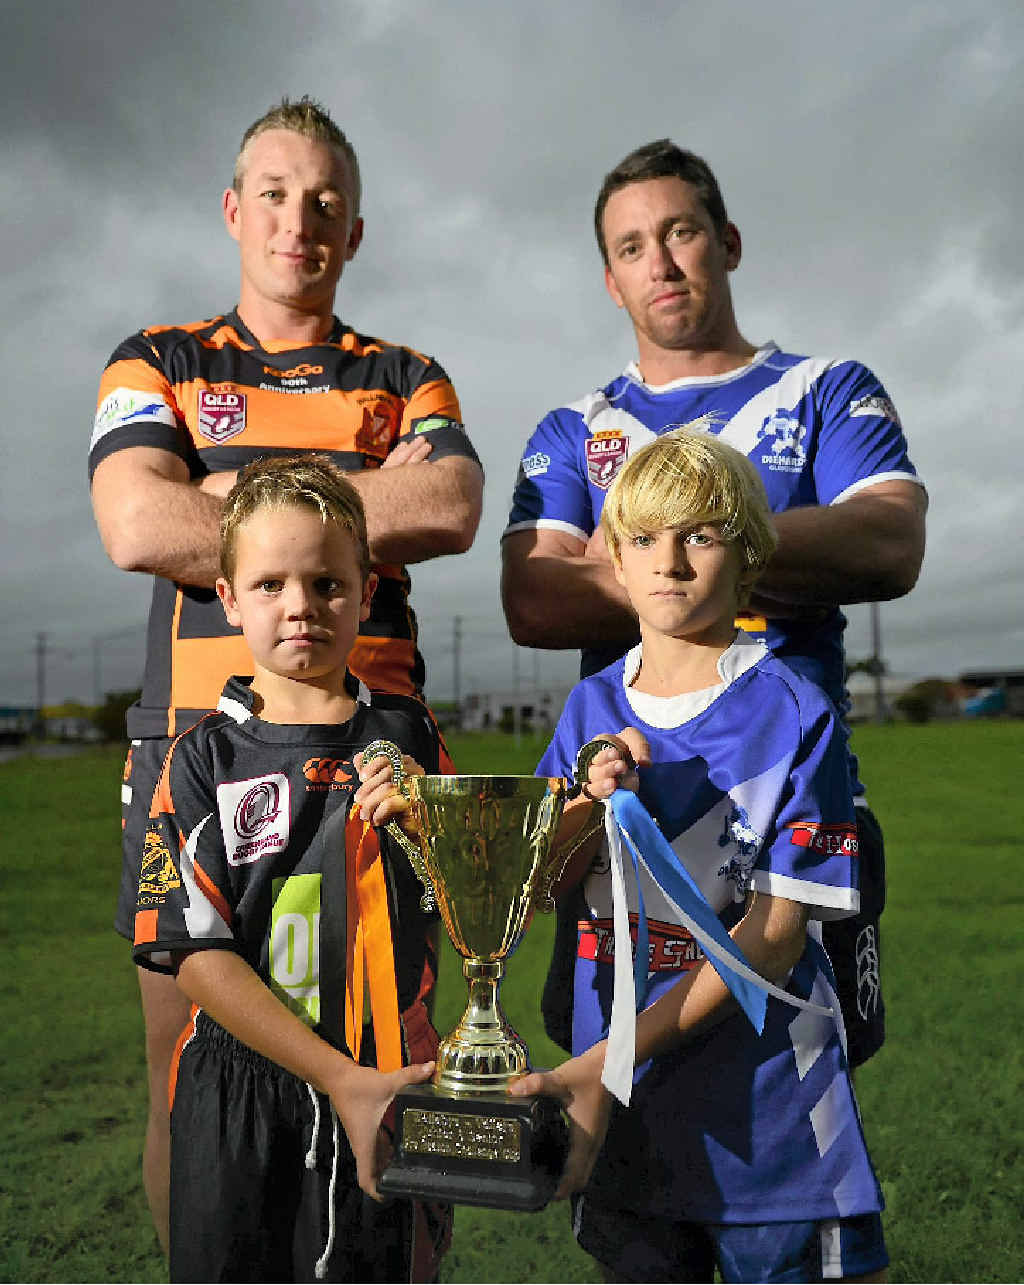 Wallabys and Valleys played in last year's grand final, and the two teams will meet again in this year's clash as the rivalry continues.